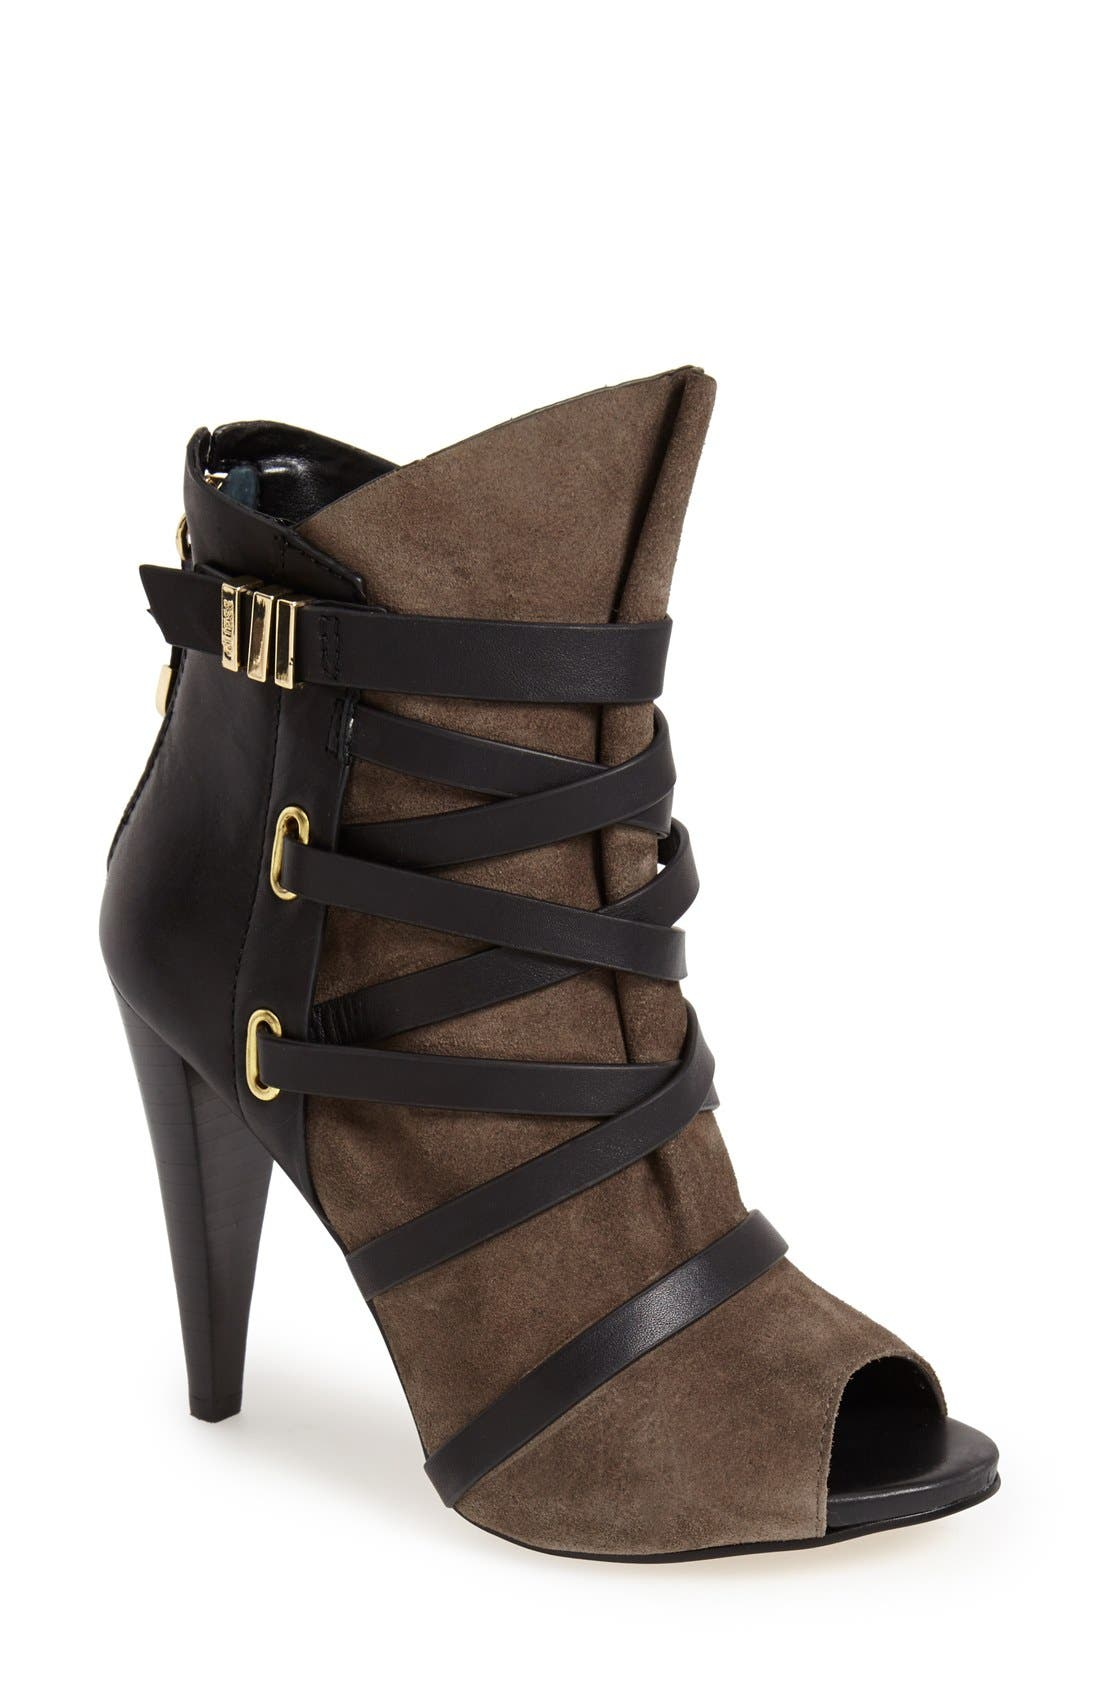 Alternate Image 1 Selected - Guess 'Candie' Peep Toe Leather Bootie (Women)